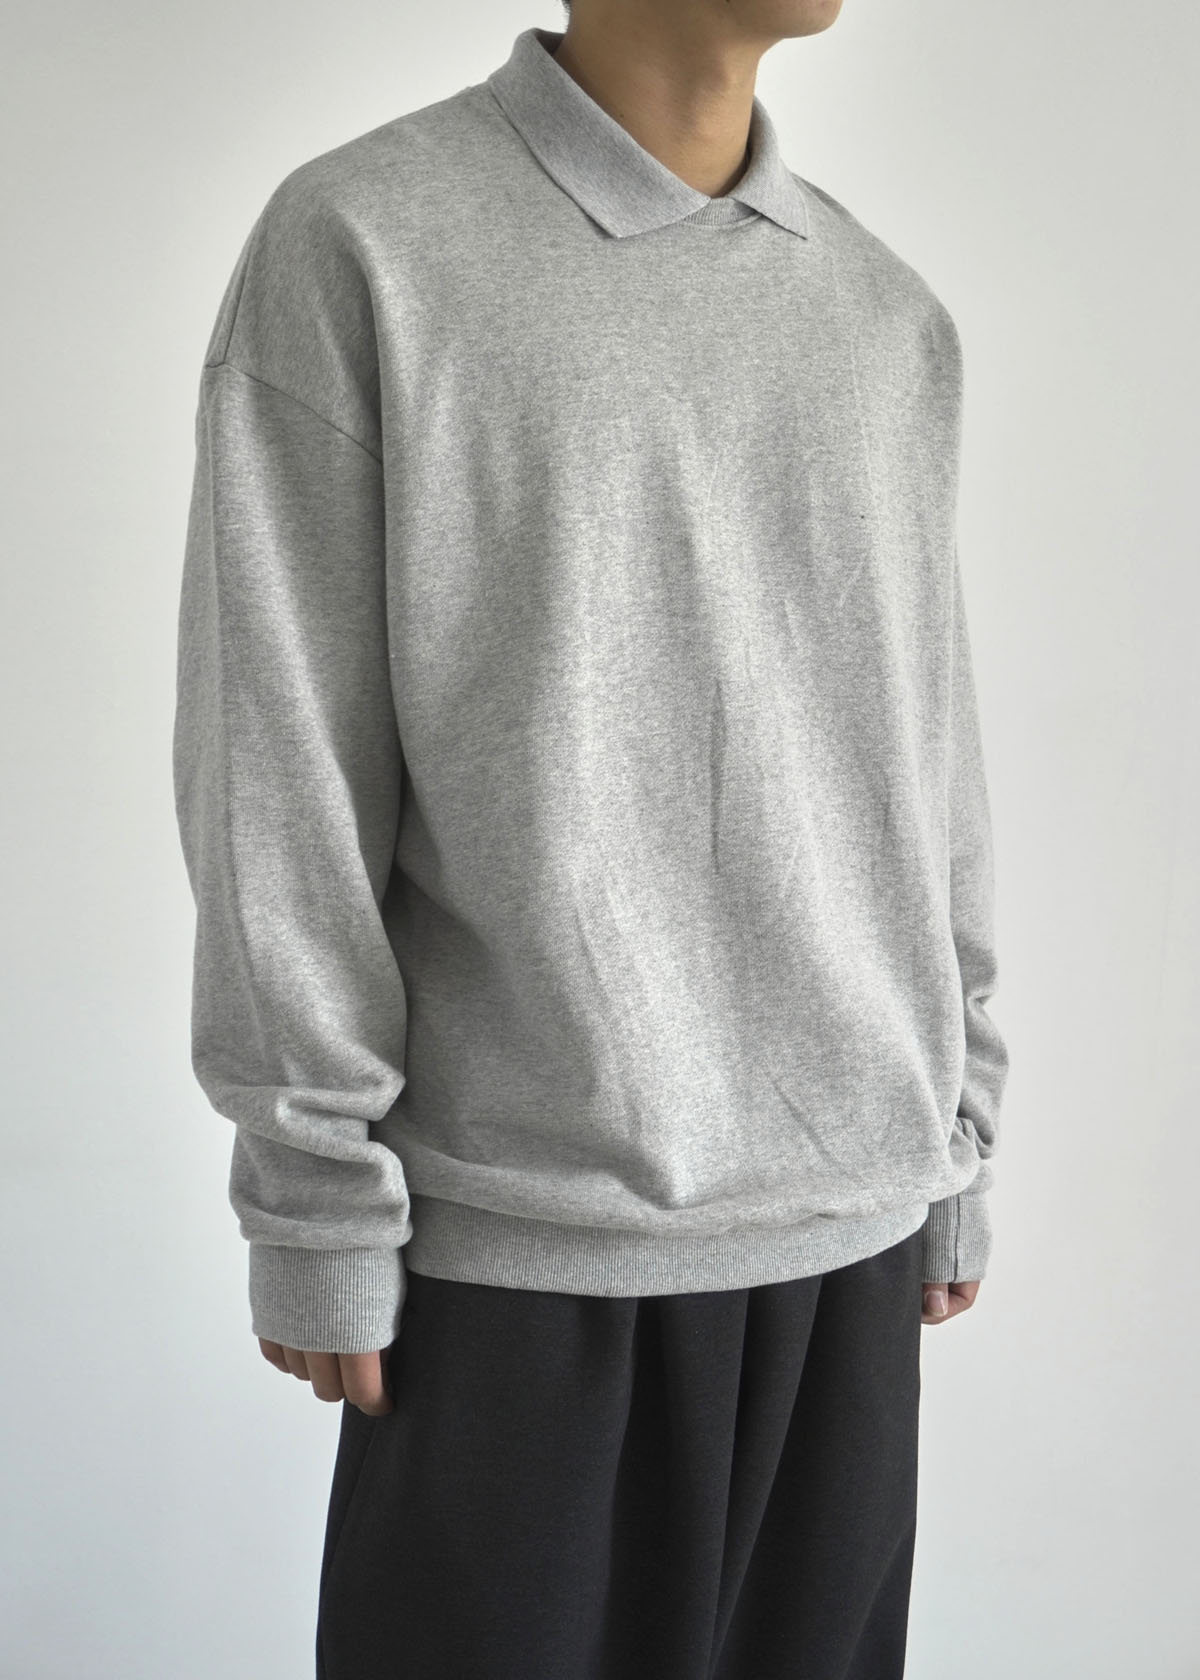 Layered Collar-neck Sweatshirts (2Color)